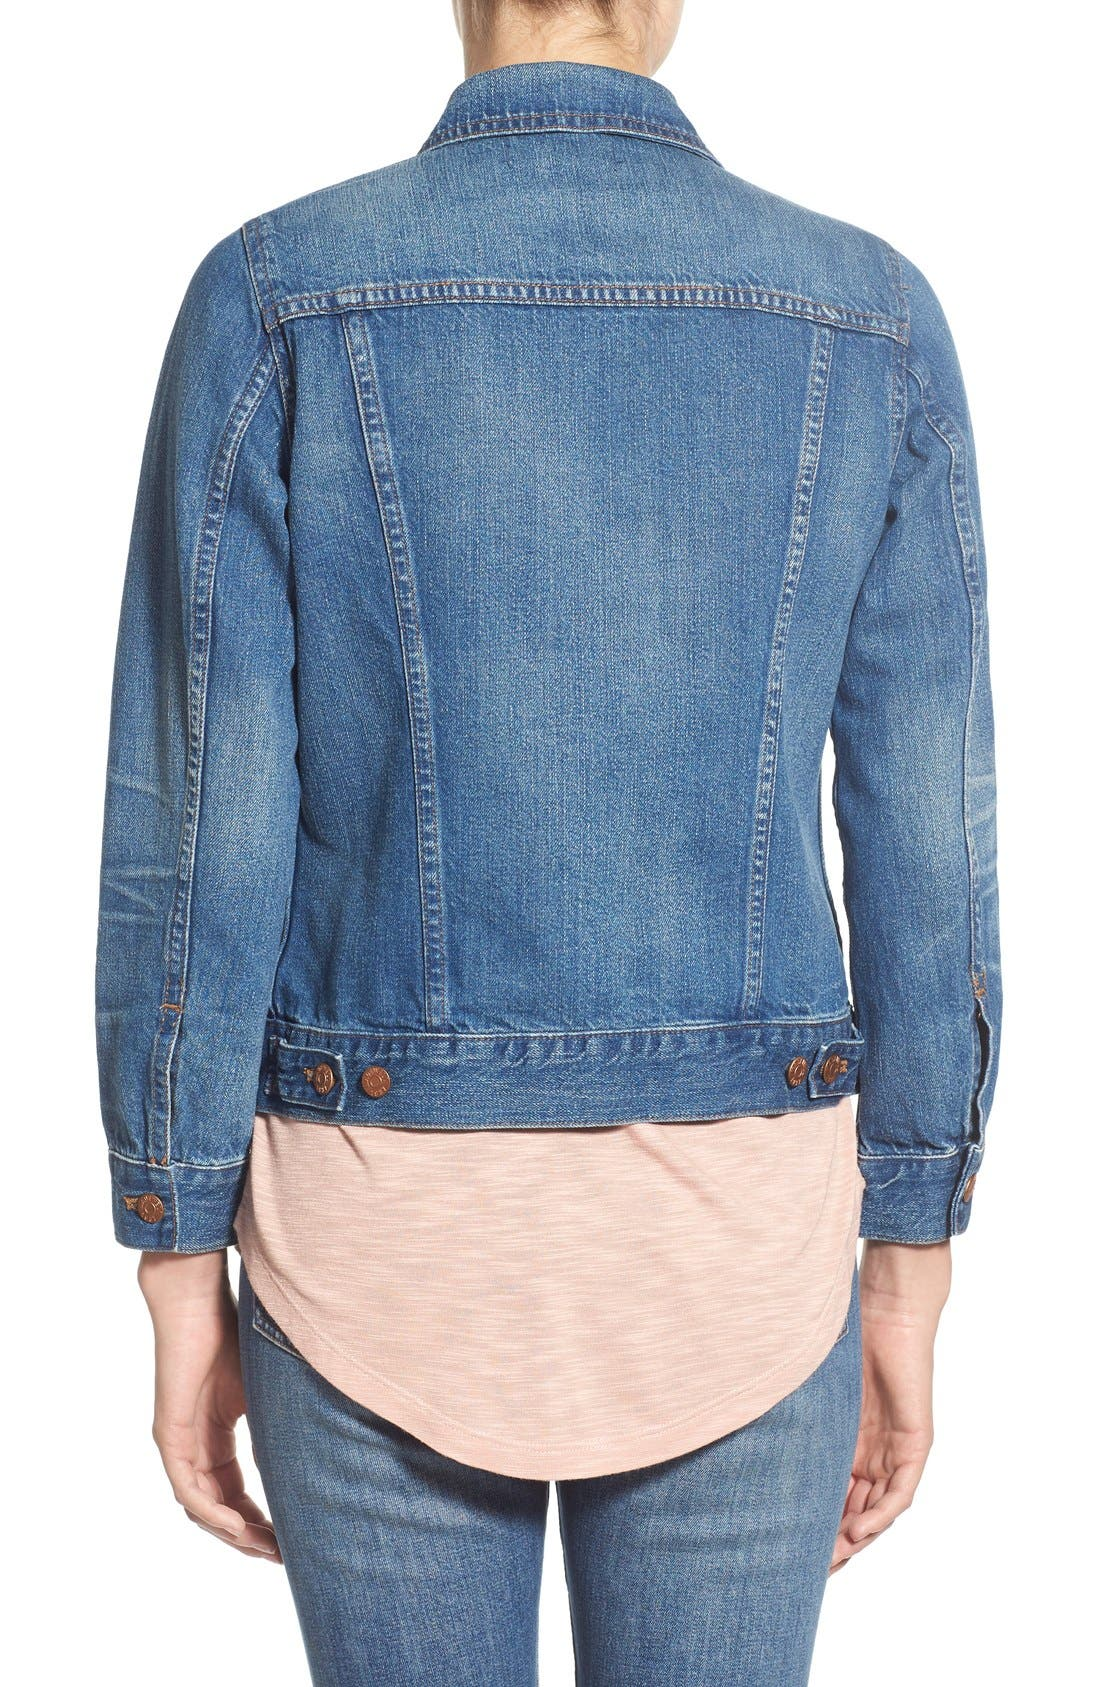 Denim Jacket,                             Alternate thumbnail 13, color,                             PINTER WASH